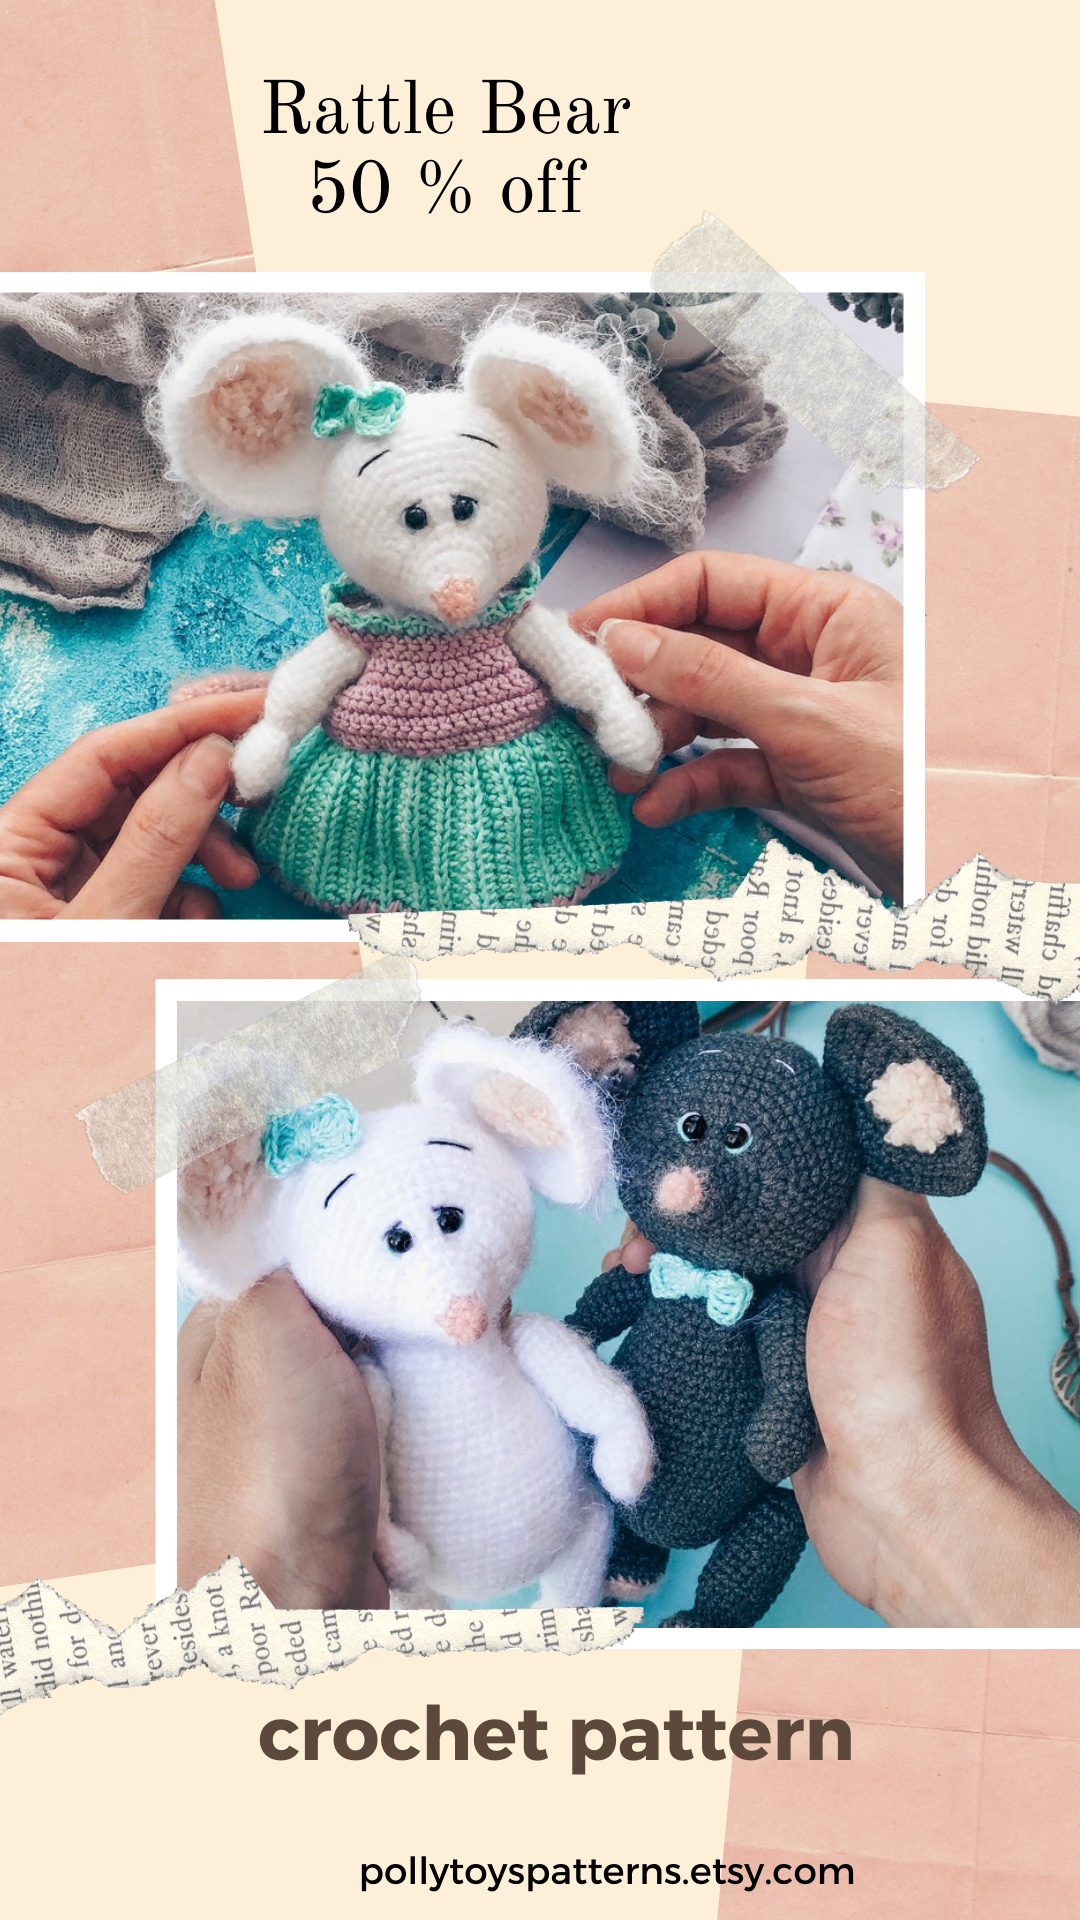 Crochet PATTERN Mouse with clothes Amigurumi Crochet toy Amigurumi mouse pattern